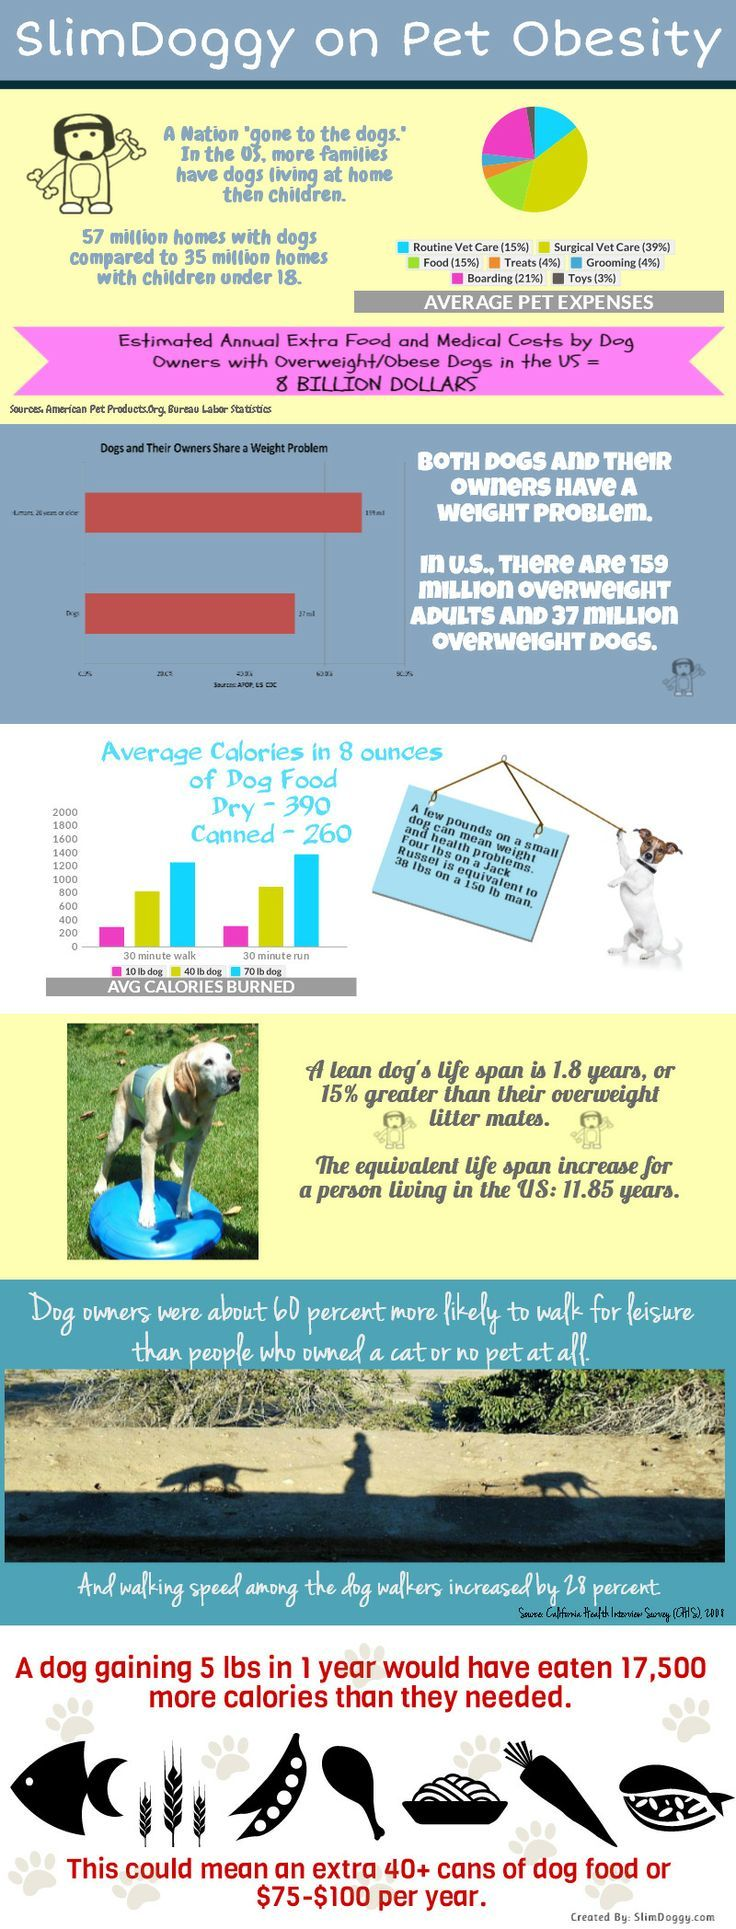 Pet Obesity Facts from Slimdoggy